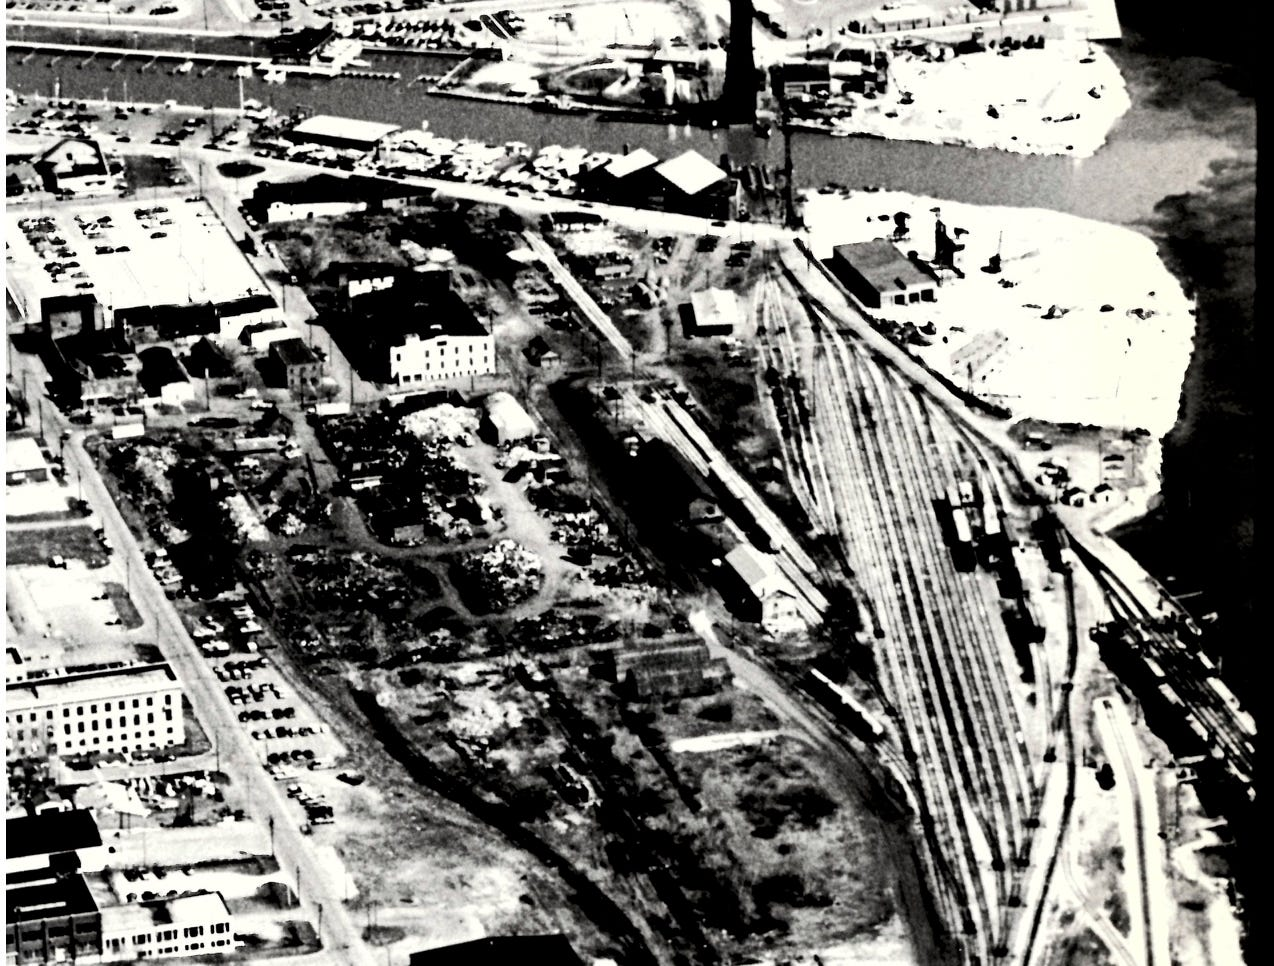 In an undated photo, snow covers the ground in downtown Port Huron around the former CSX and Grand Trunk Western railyards.